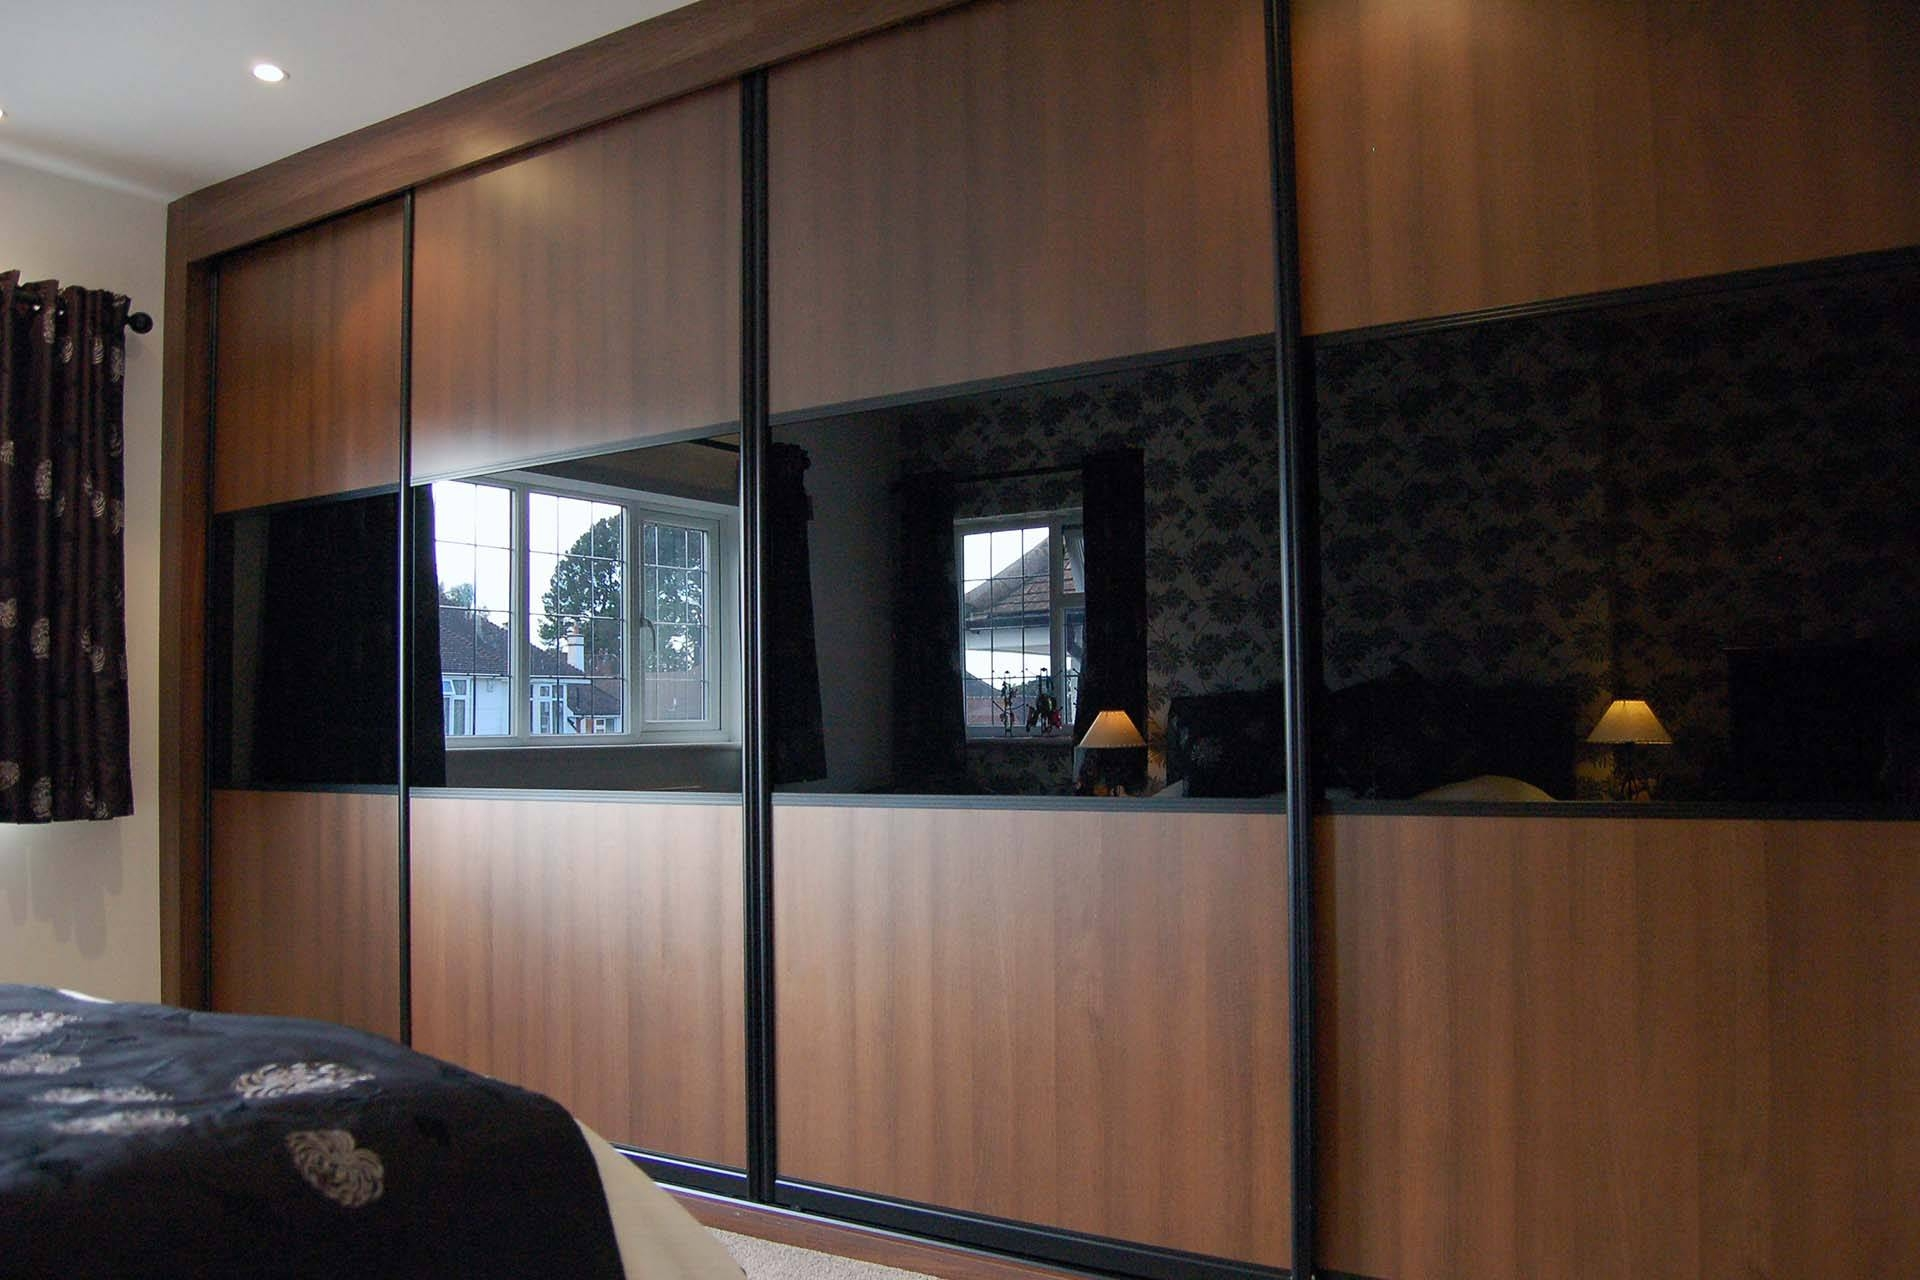 Hinged Wardrobes Versus Sliding Wardrobes within Solid Dark Wood Wardrobes (Image 14 of 30)